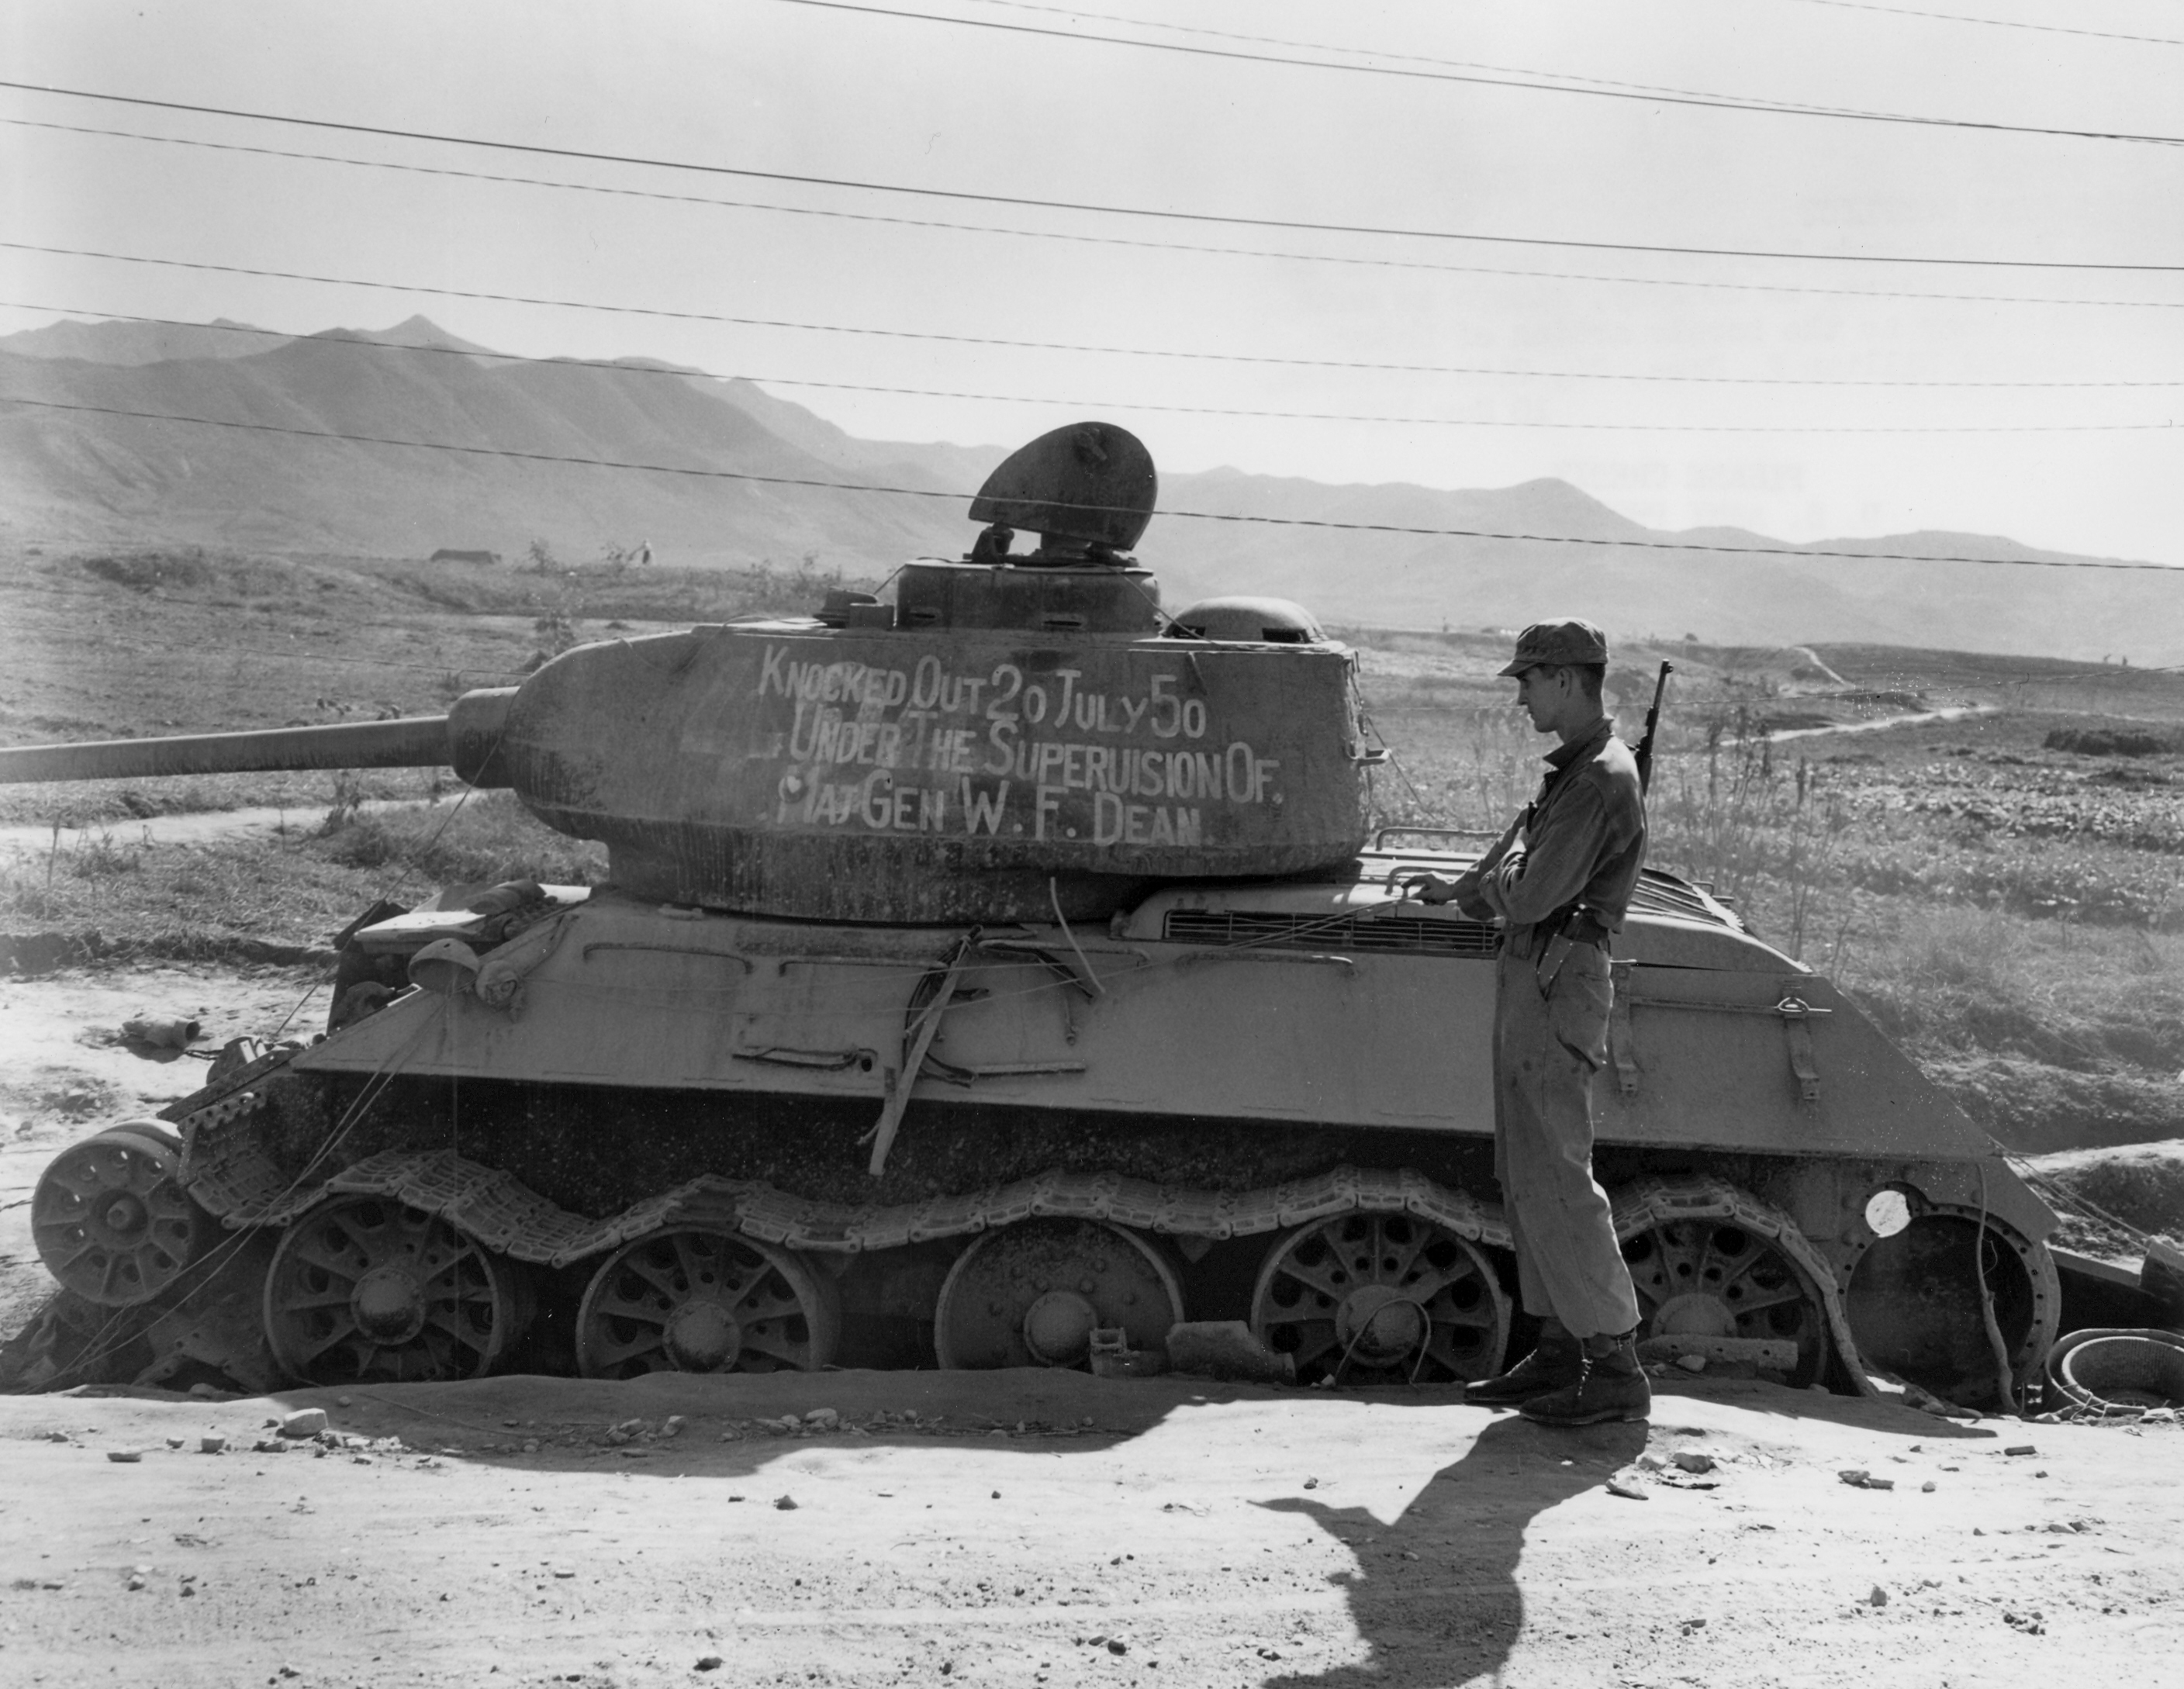 William F Dean Wikipedia Polo Valley Black Army Green A Destroyed Tank With Writing On It